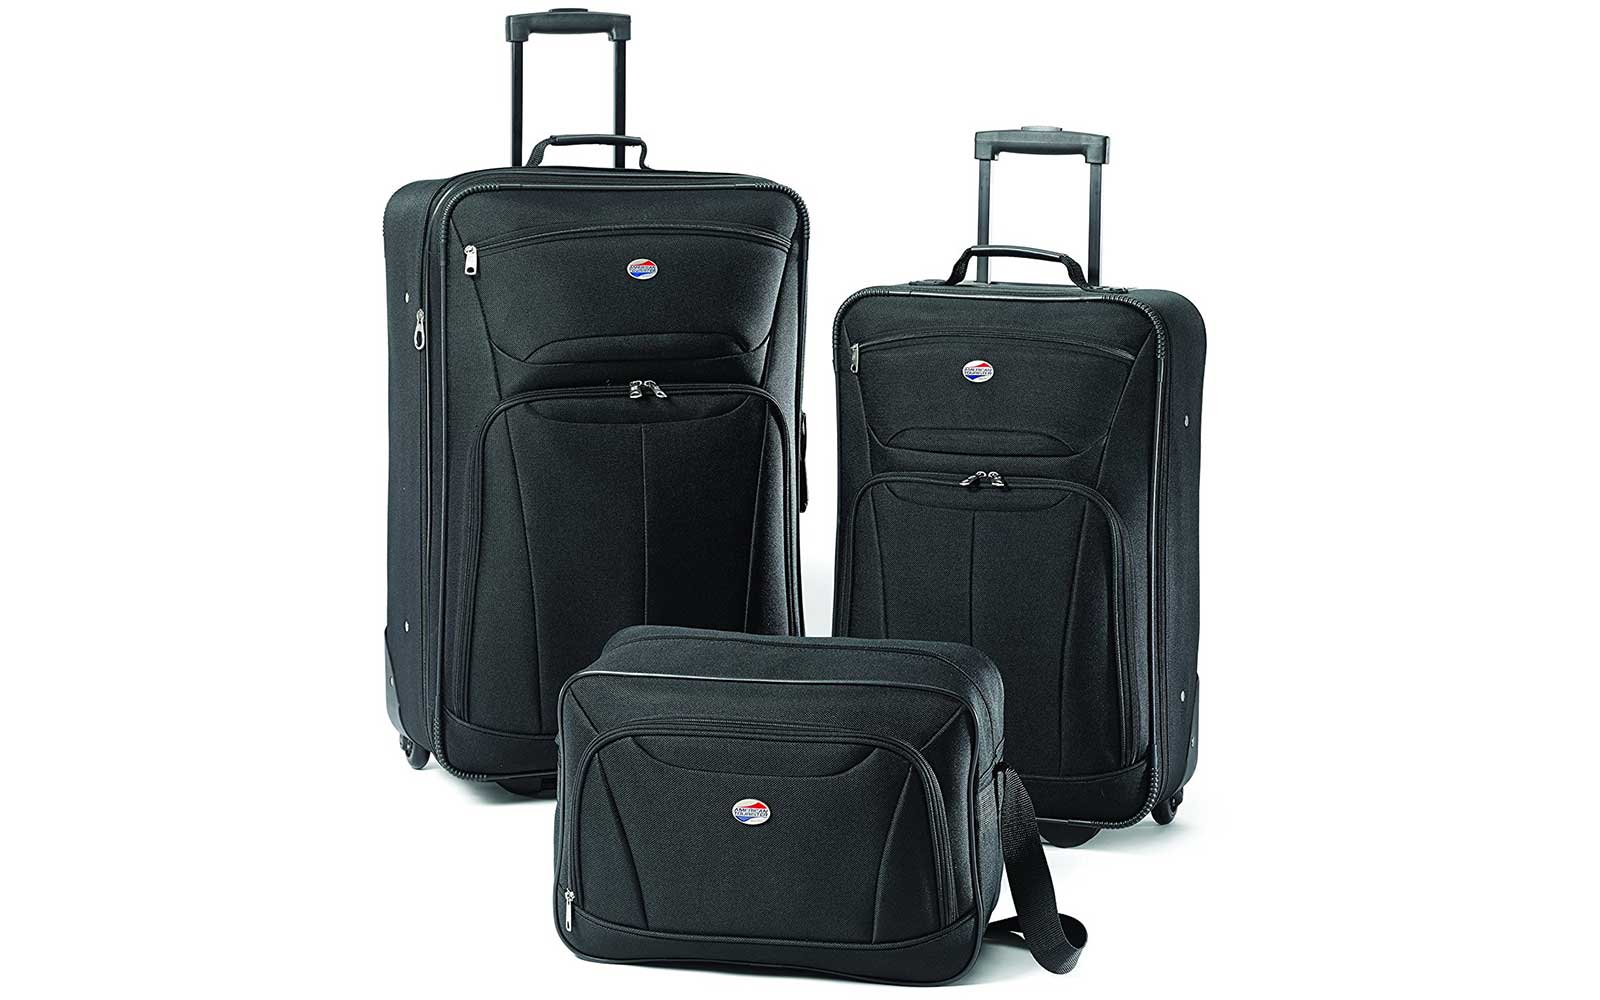 American Tourister 3pc luggage set